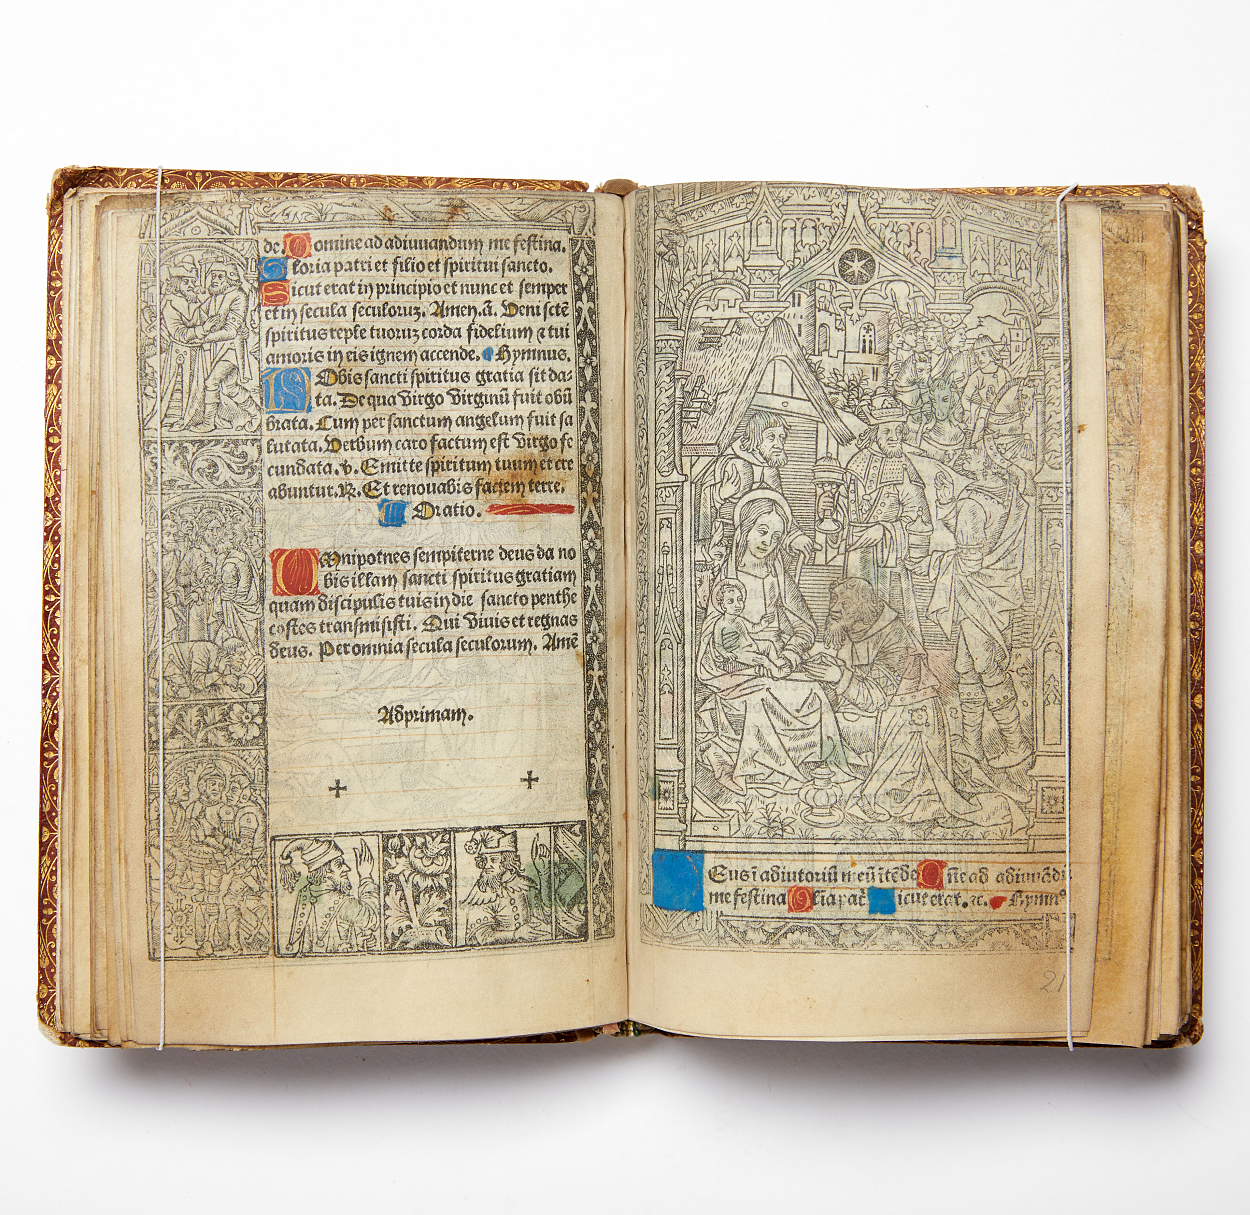 Early printed Book of hours by Th. Kerver.